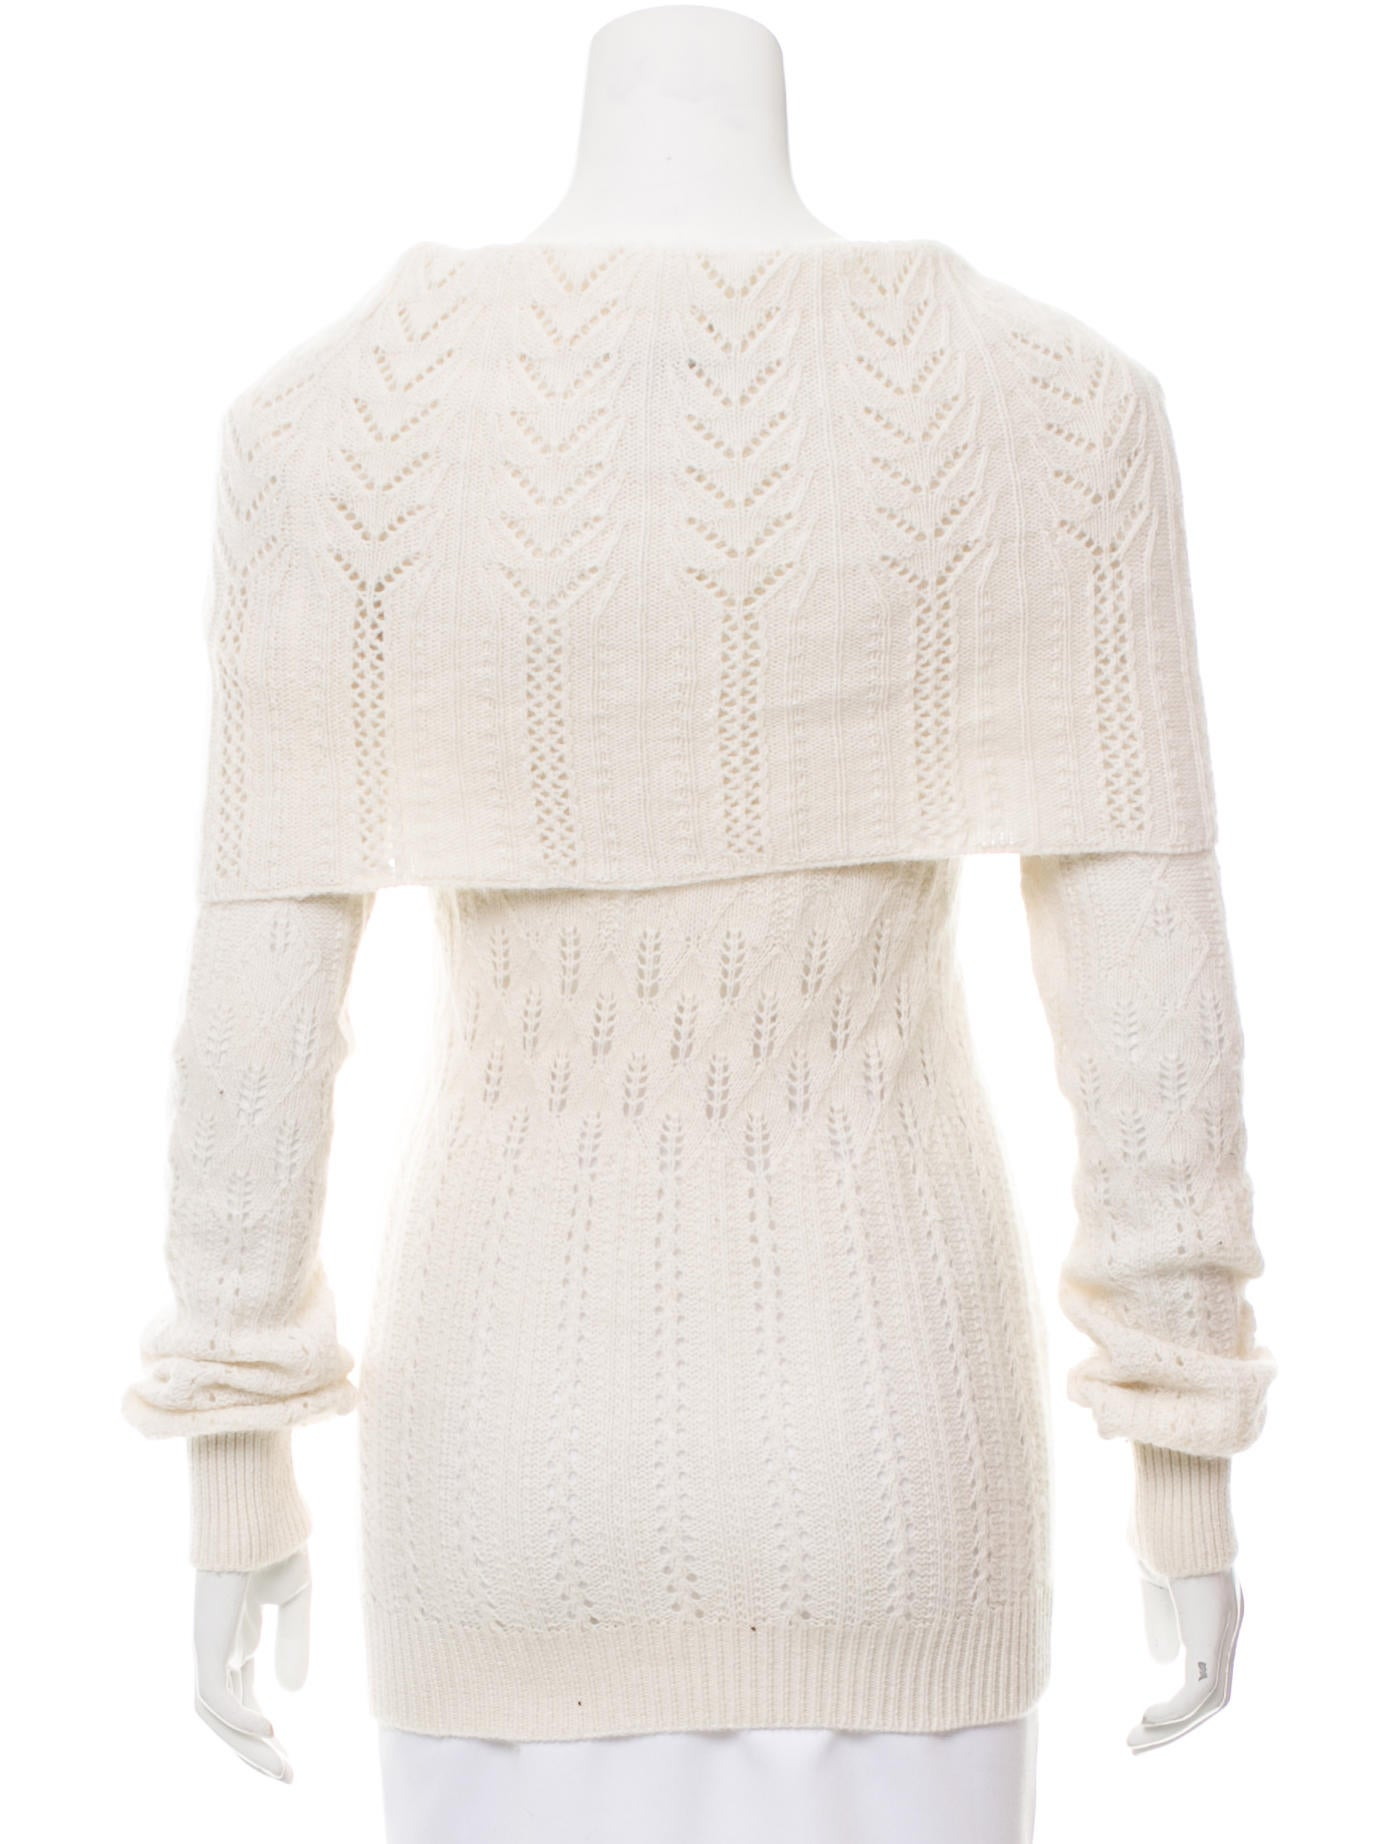 Open Knit Sweater Pattern : Stella McCartney Open Knit Cowl Neck Sweater - Clothing ...